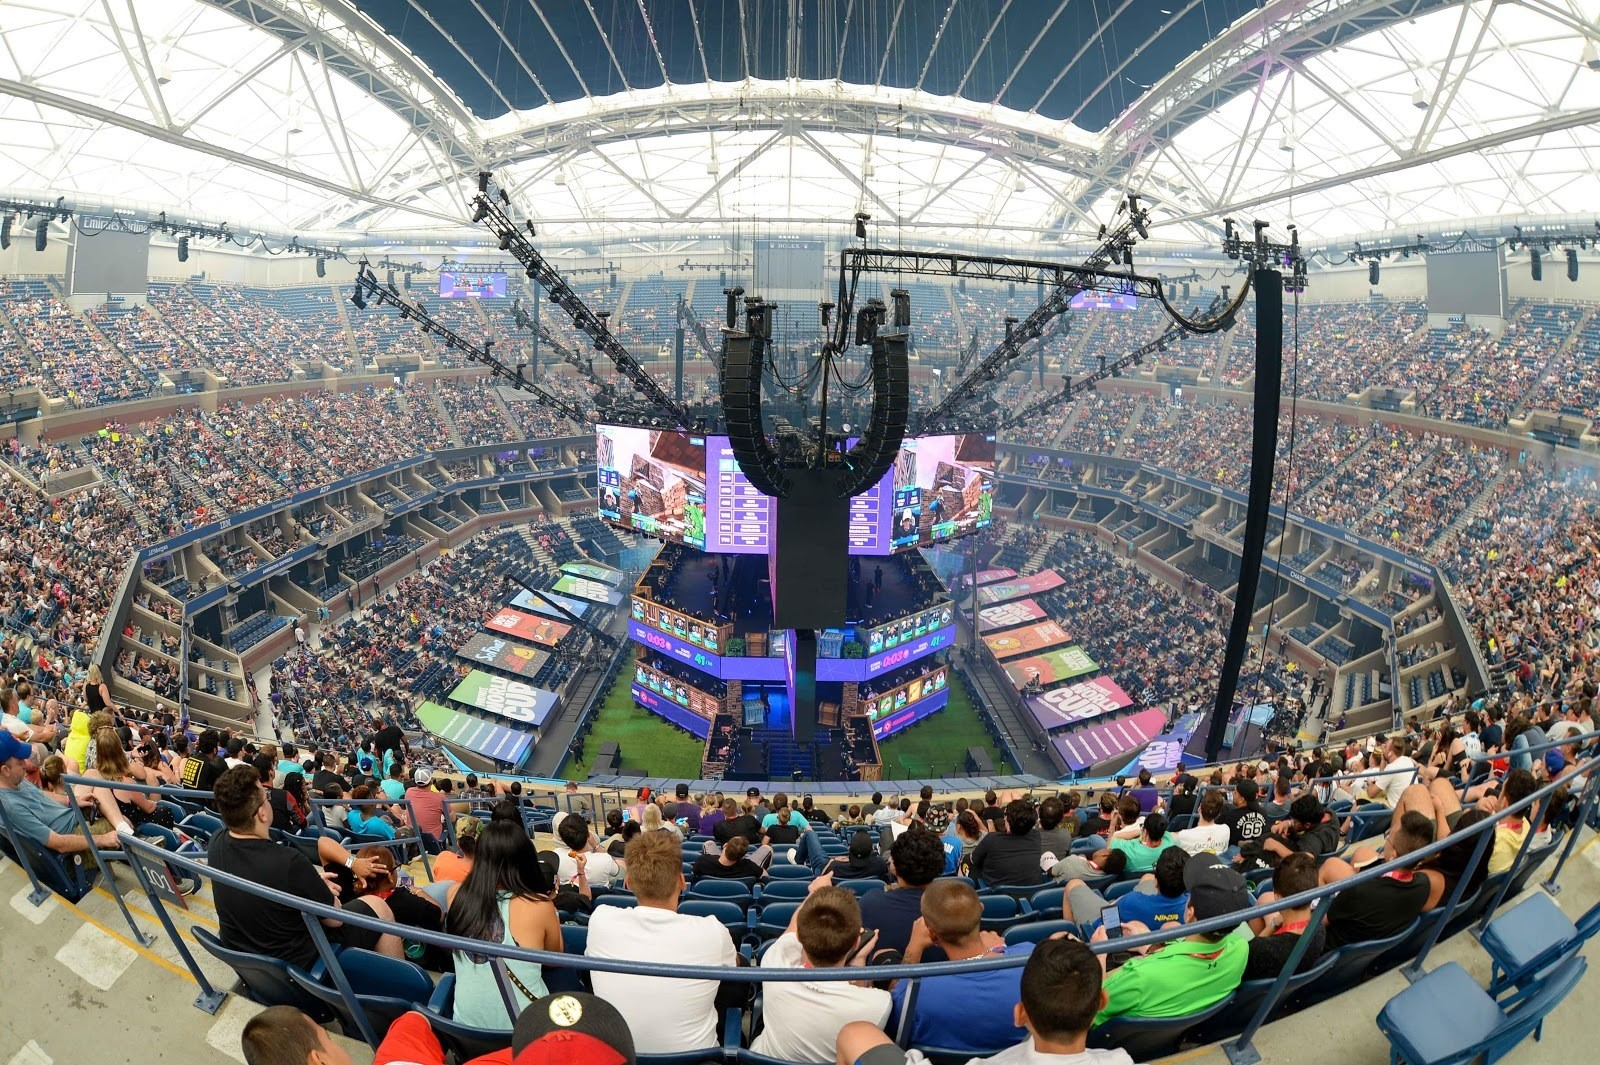 Jul 27, 2019; Flushing, NY, USA; A general view of Athur Ashe Stadium during the Fortnite World Cup Finals e-sports event at Arthur Ashe Stadium. Mandatory Credit: Dennis Schneidler-USA TODAY Sports - 13110563